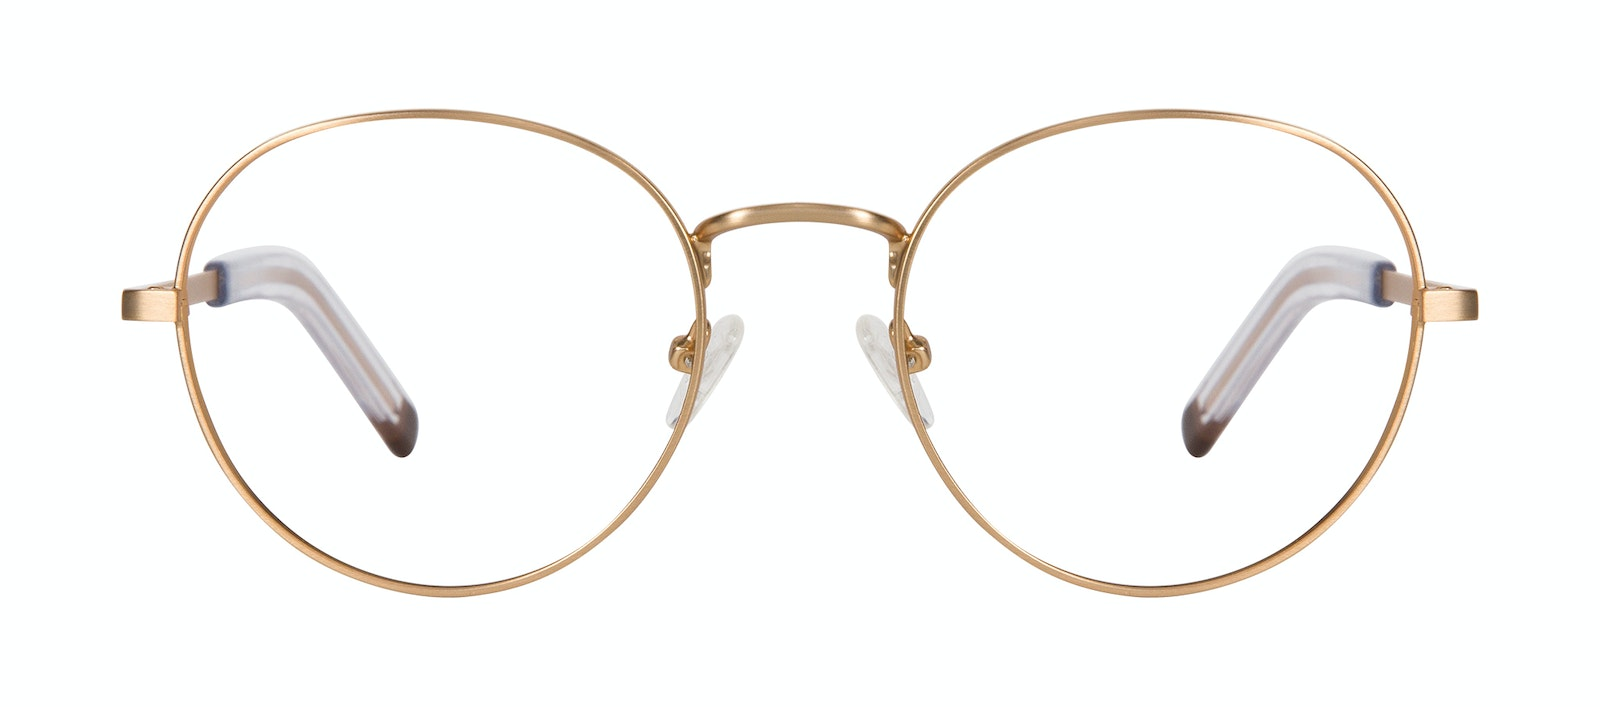 Affordable Fashion Glasses Round Eyeglasses Men Lean XL Gold Matte Front